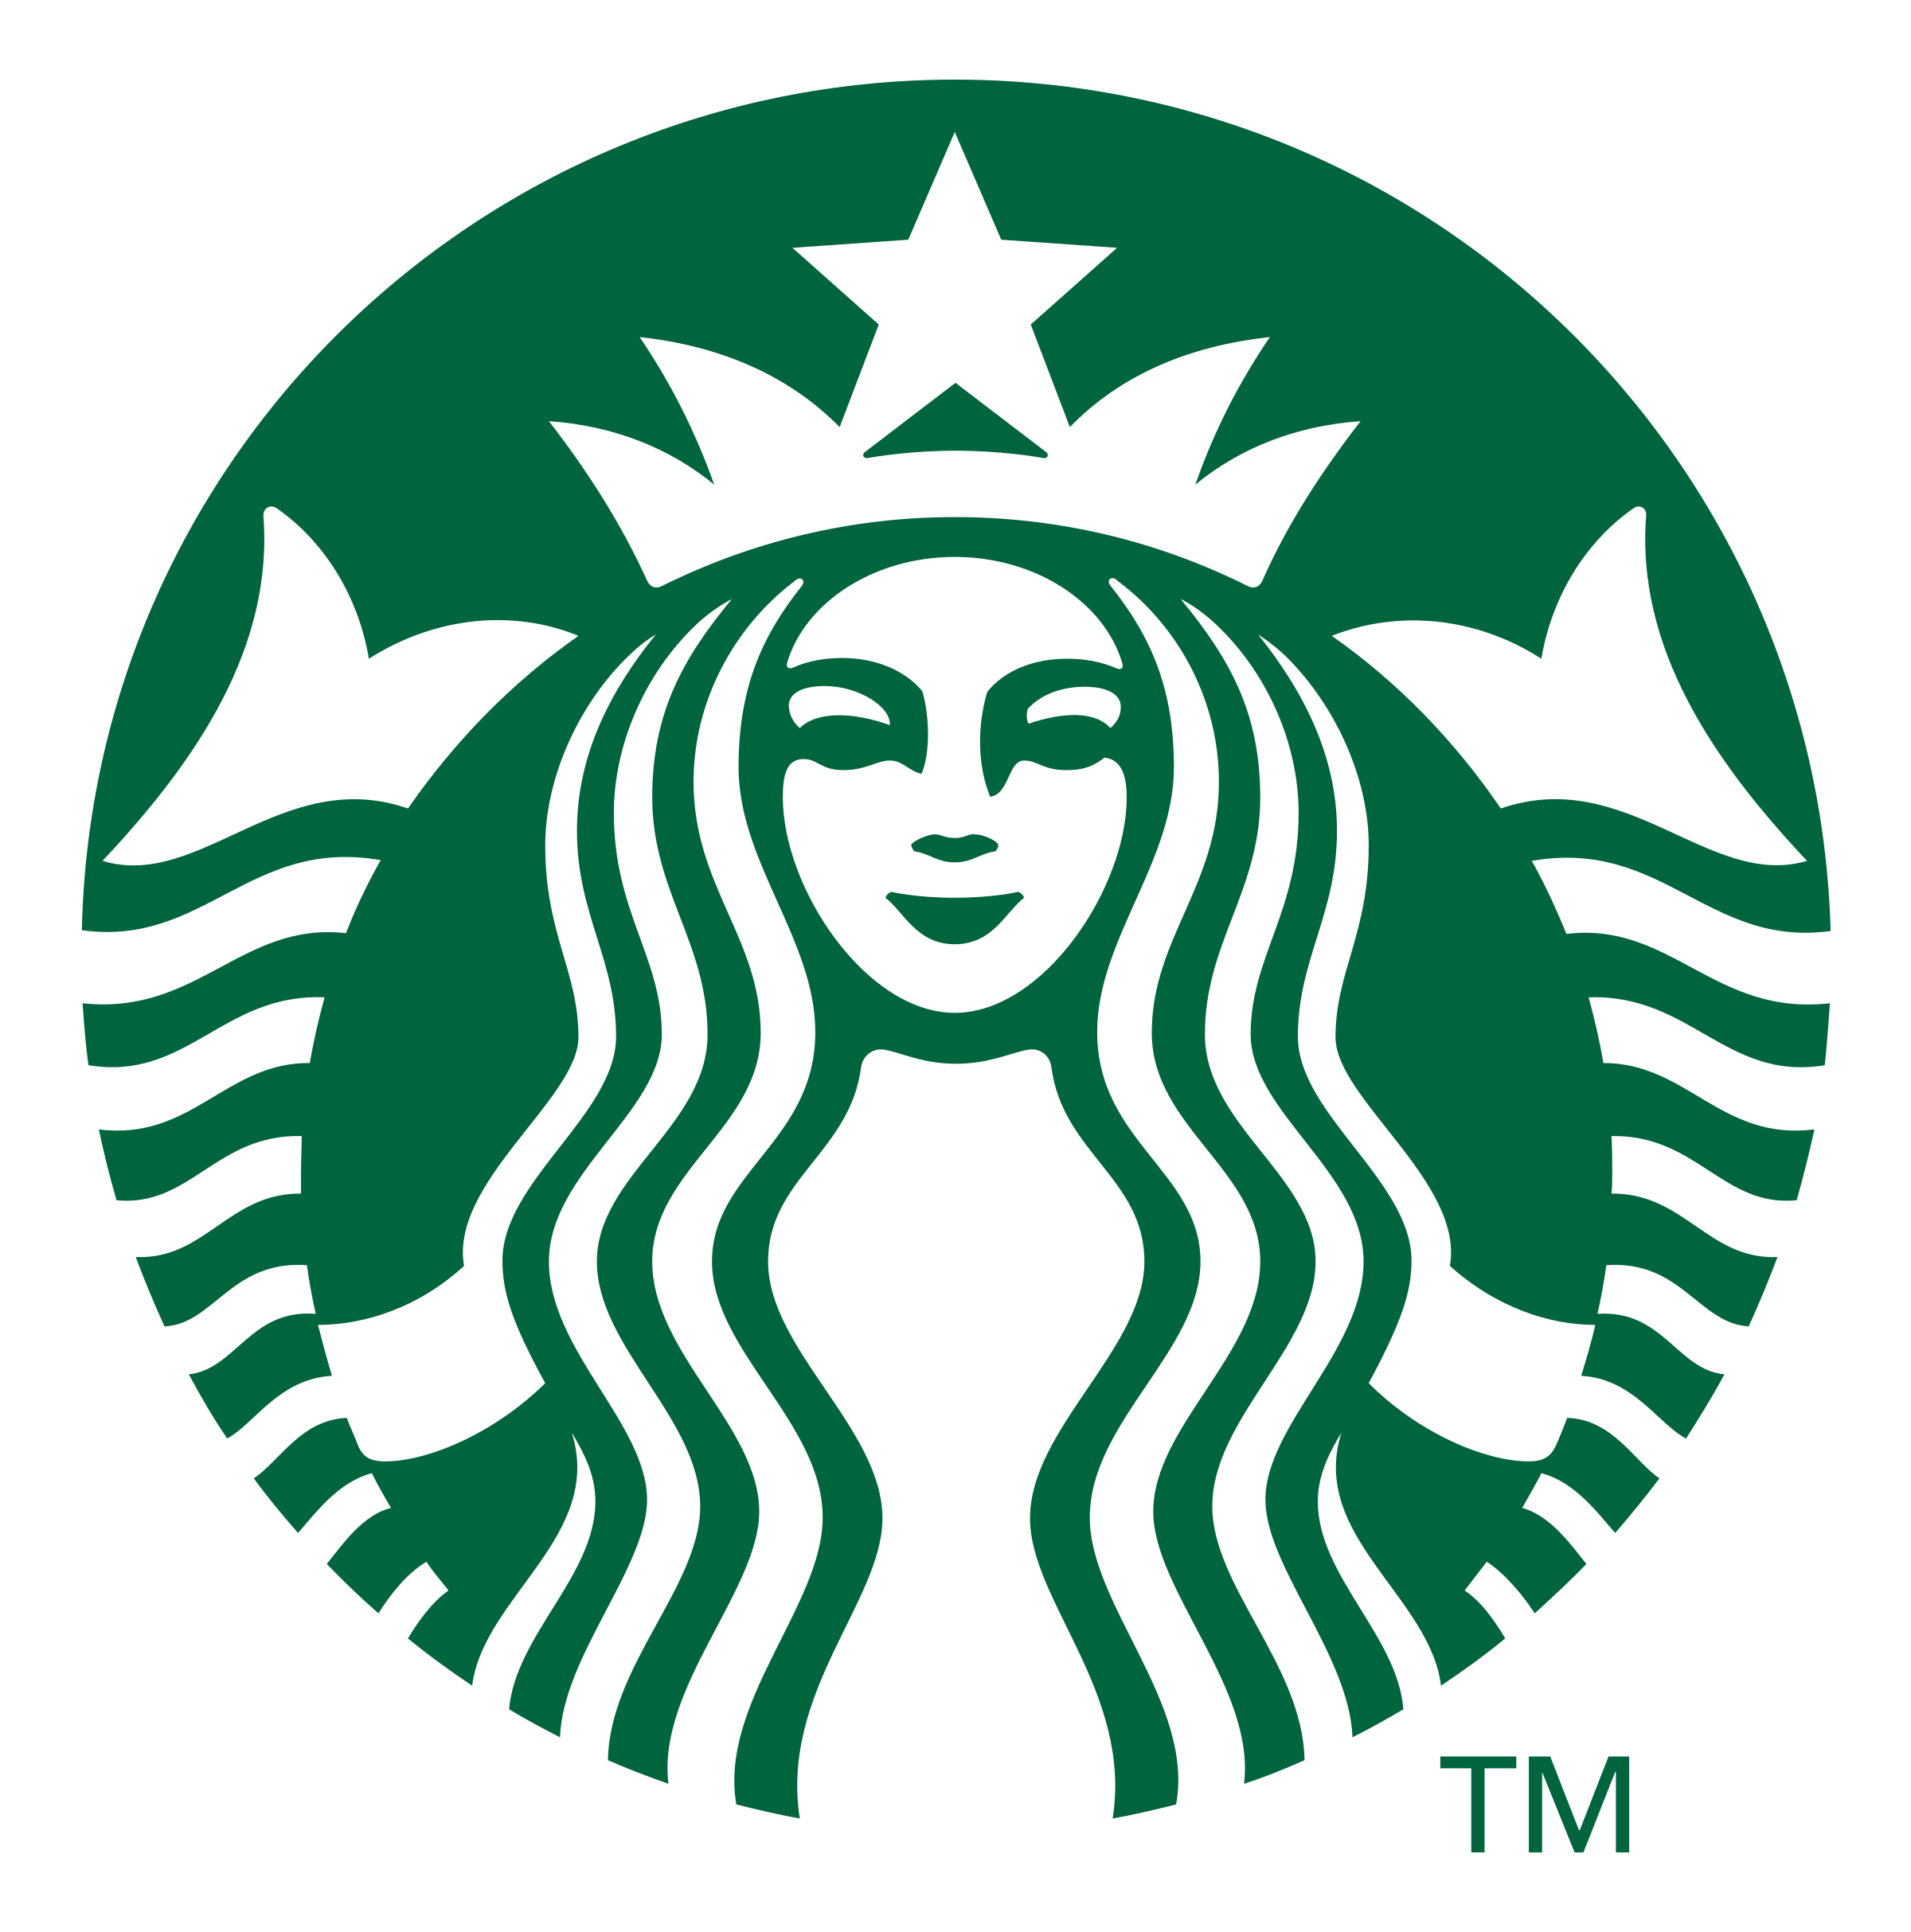 2400x2427 Starbucks Starbucks Logo Design Vector Free Download